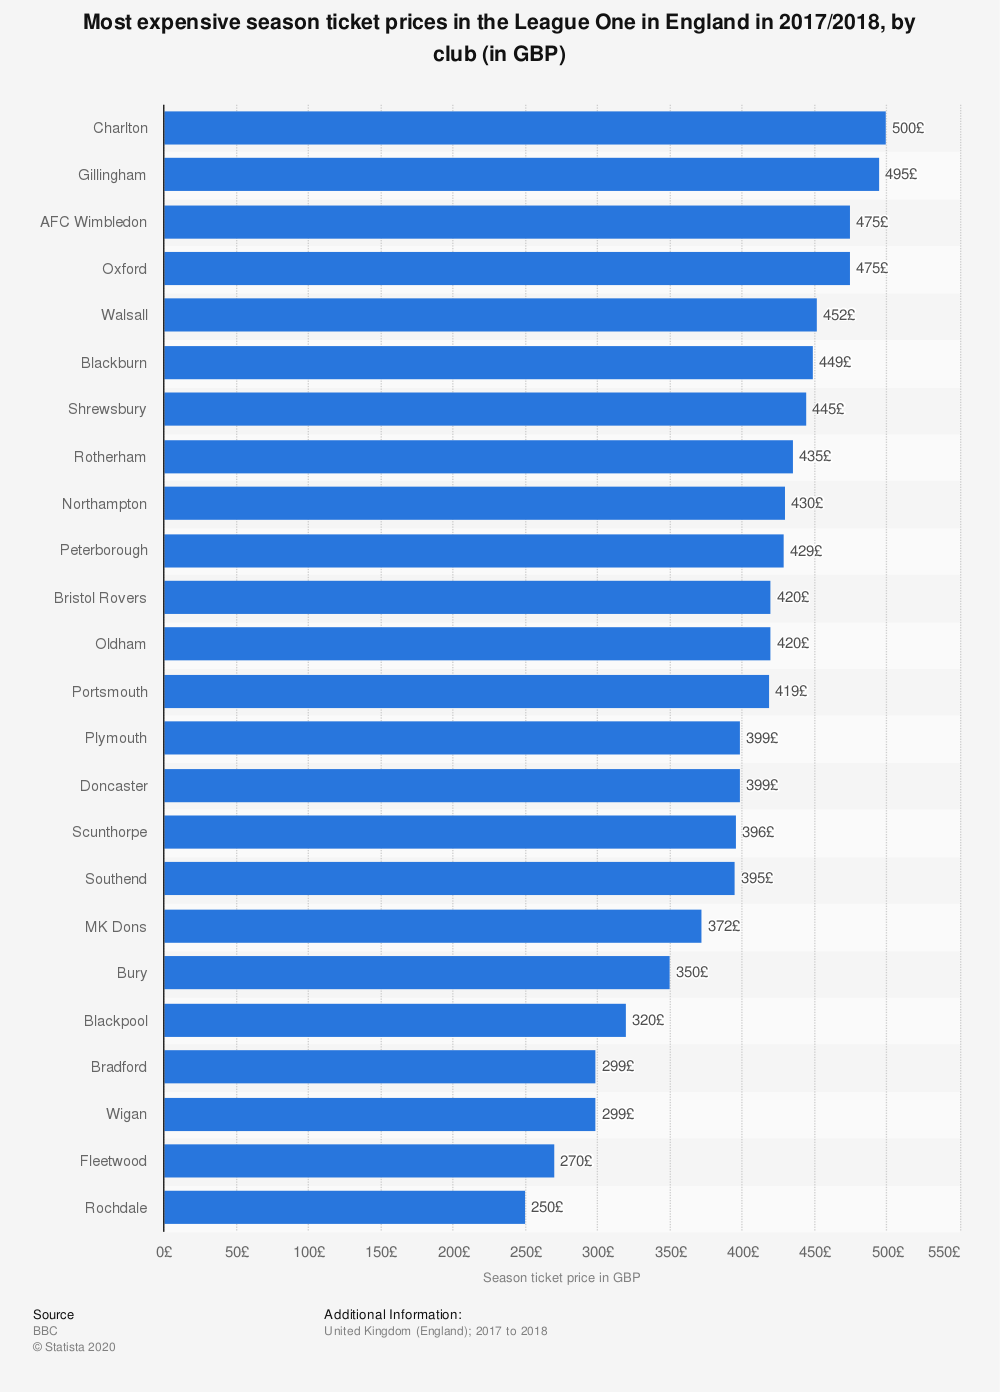 Statistic: Most expensive season ticket prices in the League One in England in 2017/2018, by club (in GBP) | Statista